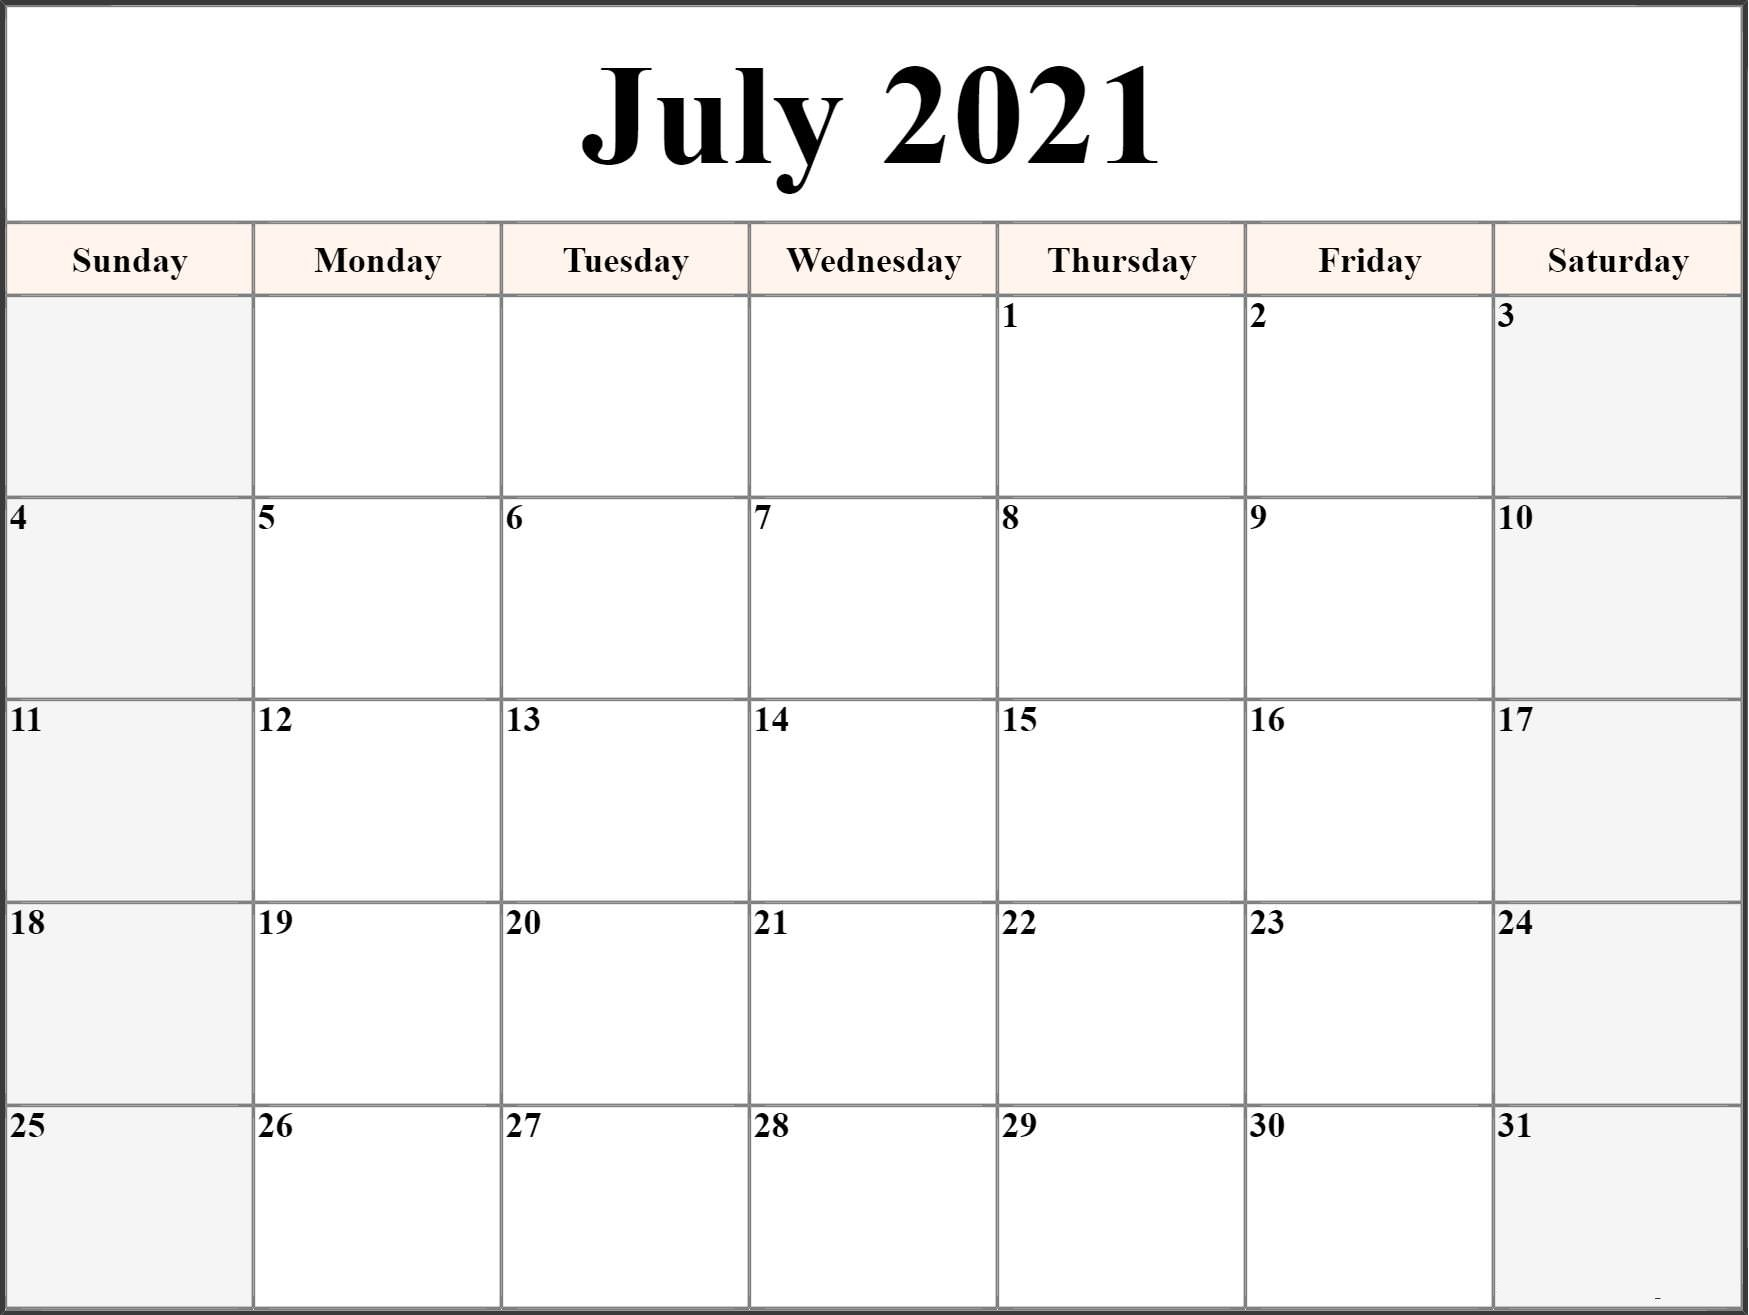 July 2021 Calendar Word Free Printable July 2021 Calendar Template in PDF & Word